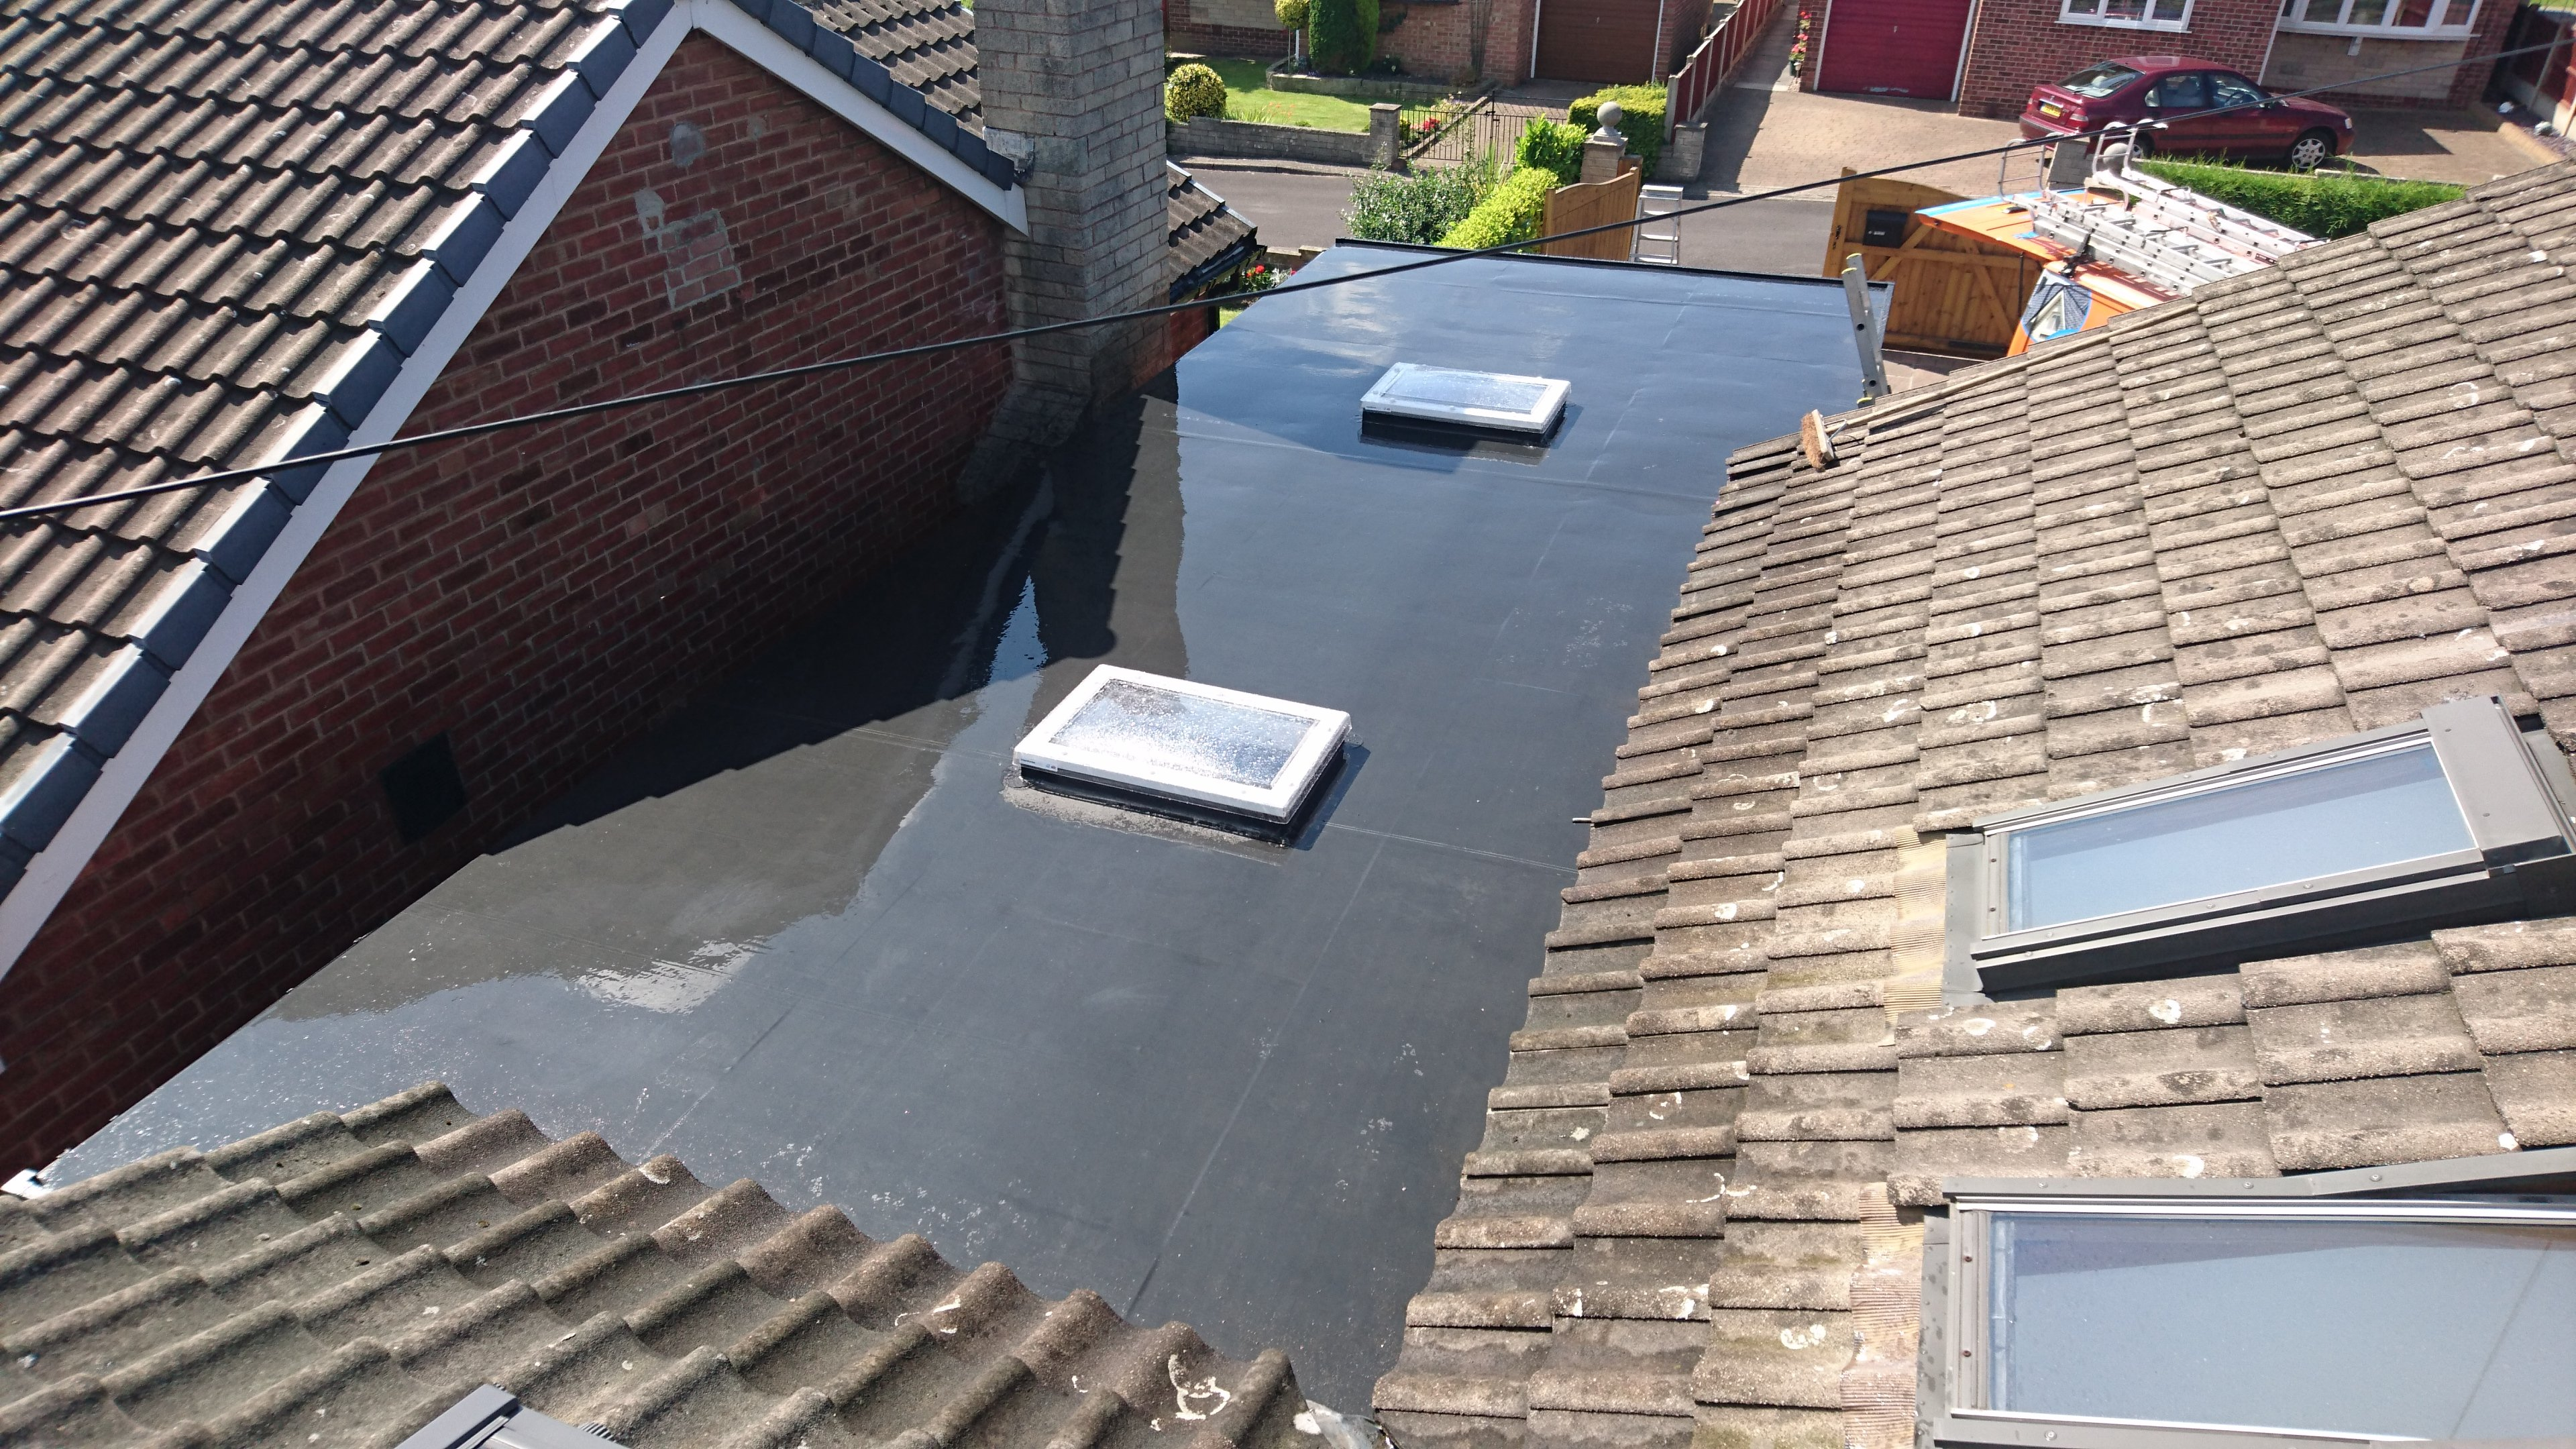 rile roof and flat roof